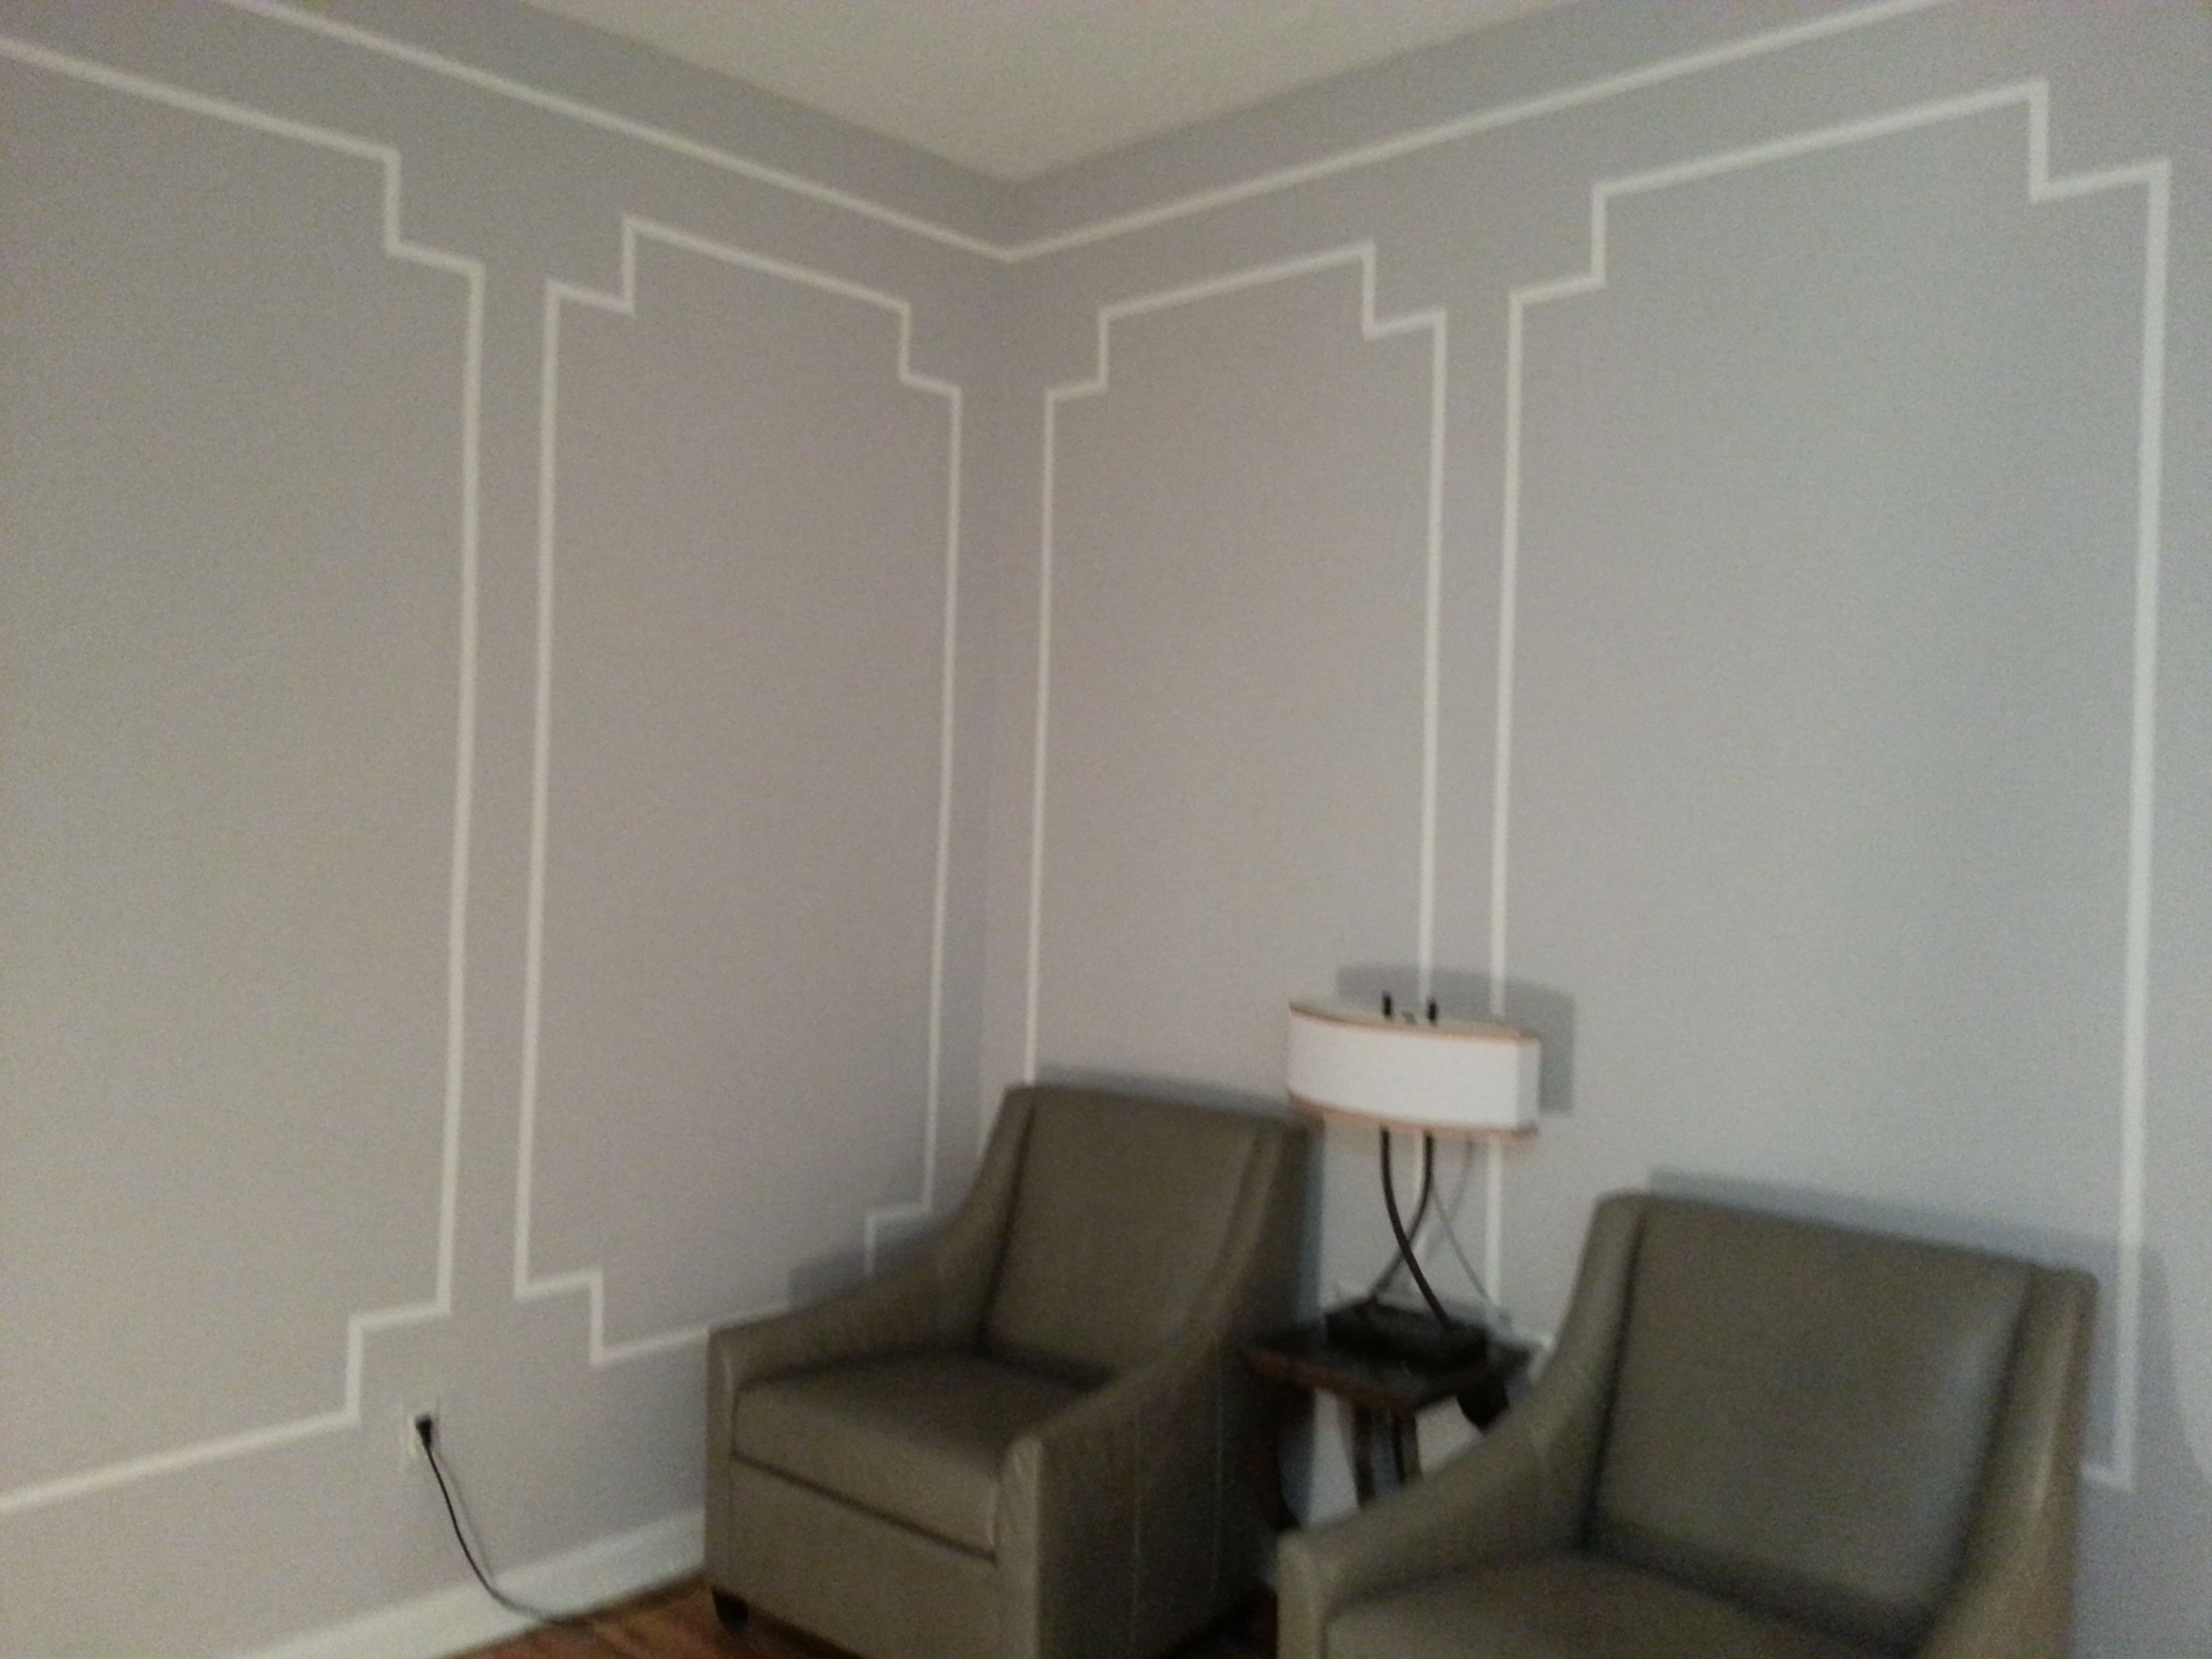 Walls with faux picture frame wall moldings color is bm walls with faux picture frame wall moldings color is bm perspective with white jeuxipadfo Images